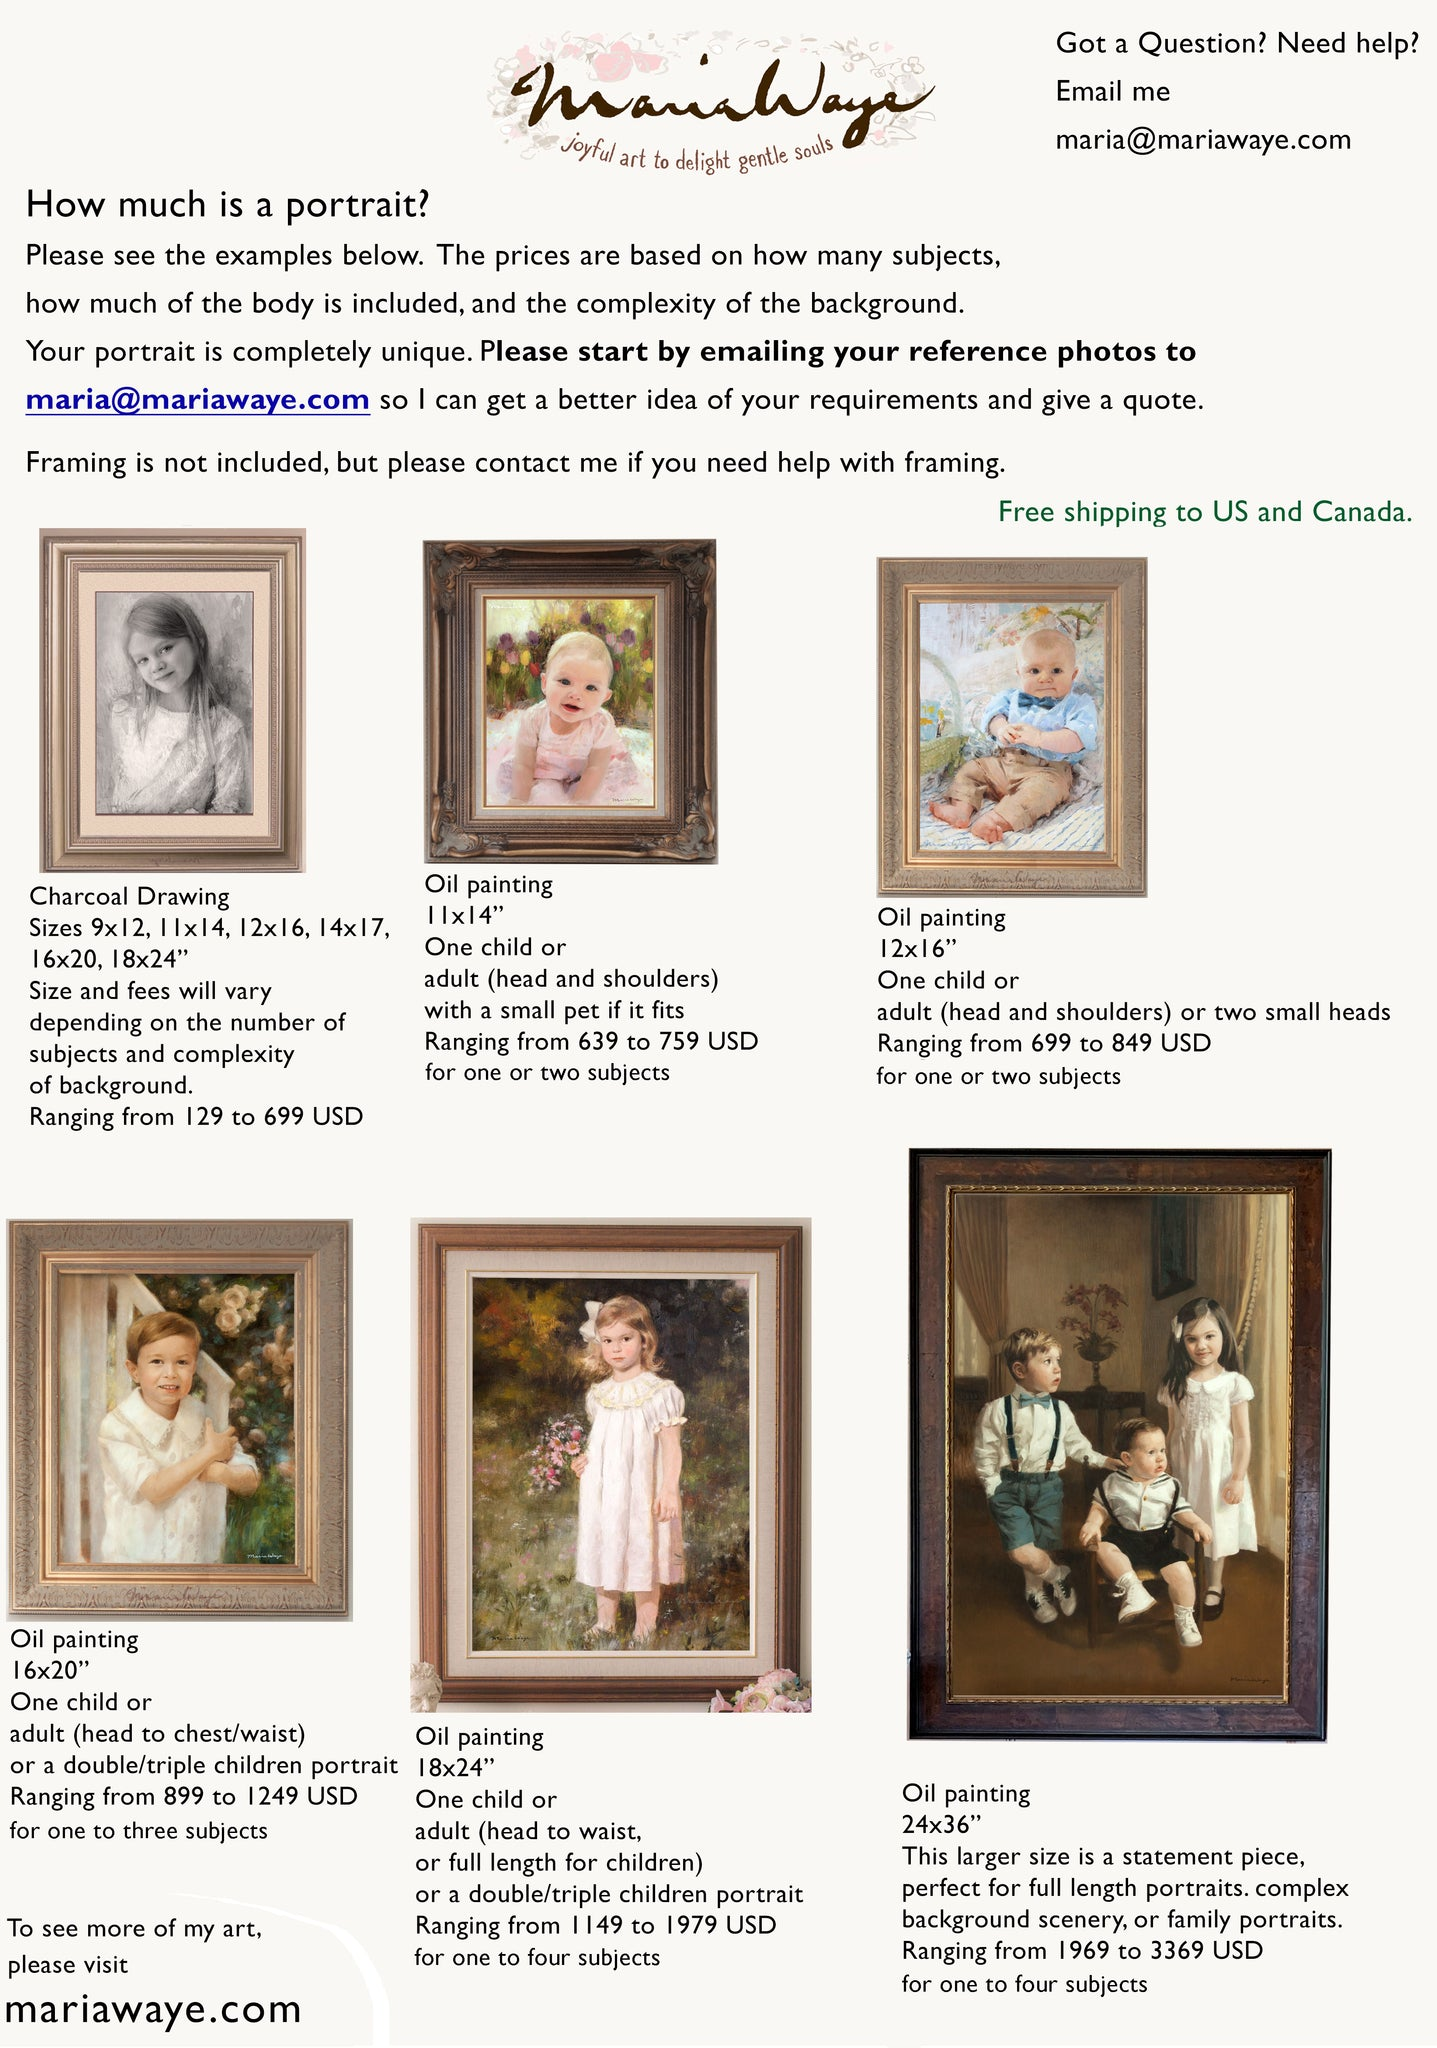 How much does it cost to get a portrait done? How much does a portrait painting cost? Toronto artist Maria Waye specializing in oil painting portraits for children babies and families.